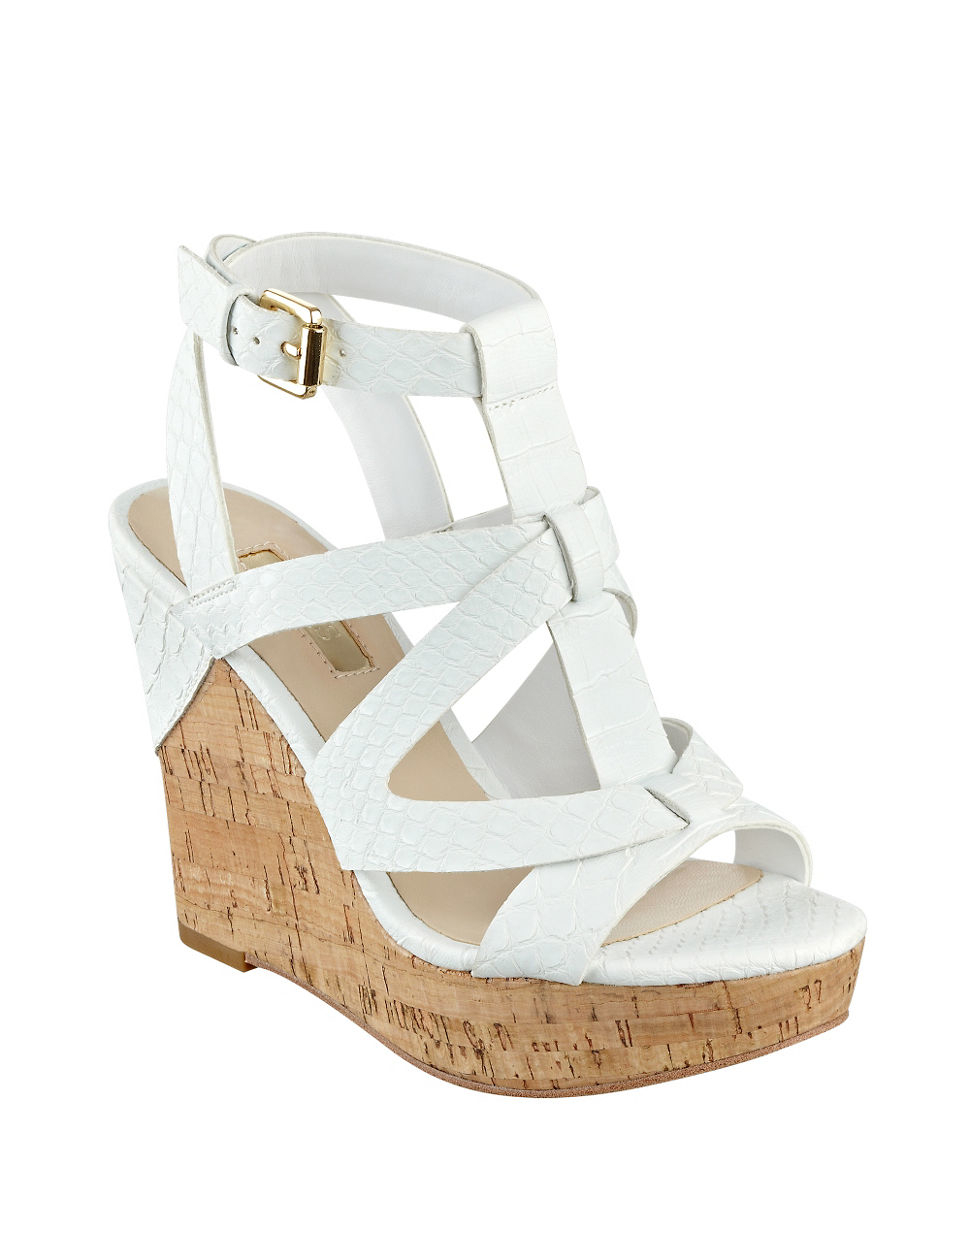 Harlea Sandals Lyst White Wedge Eywehid29 Platform In Guess knP0wO